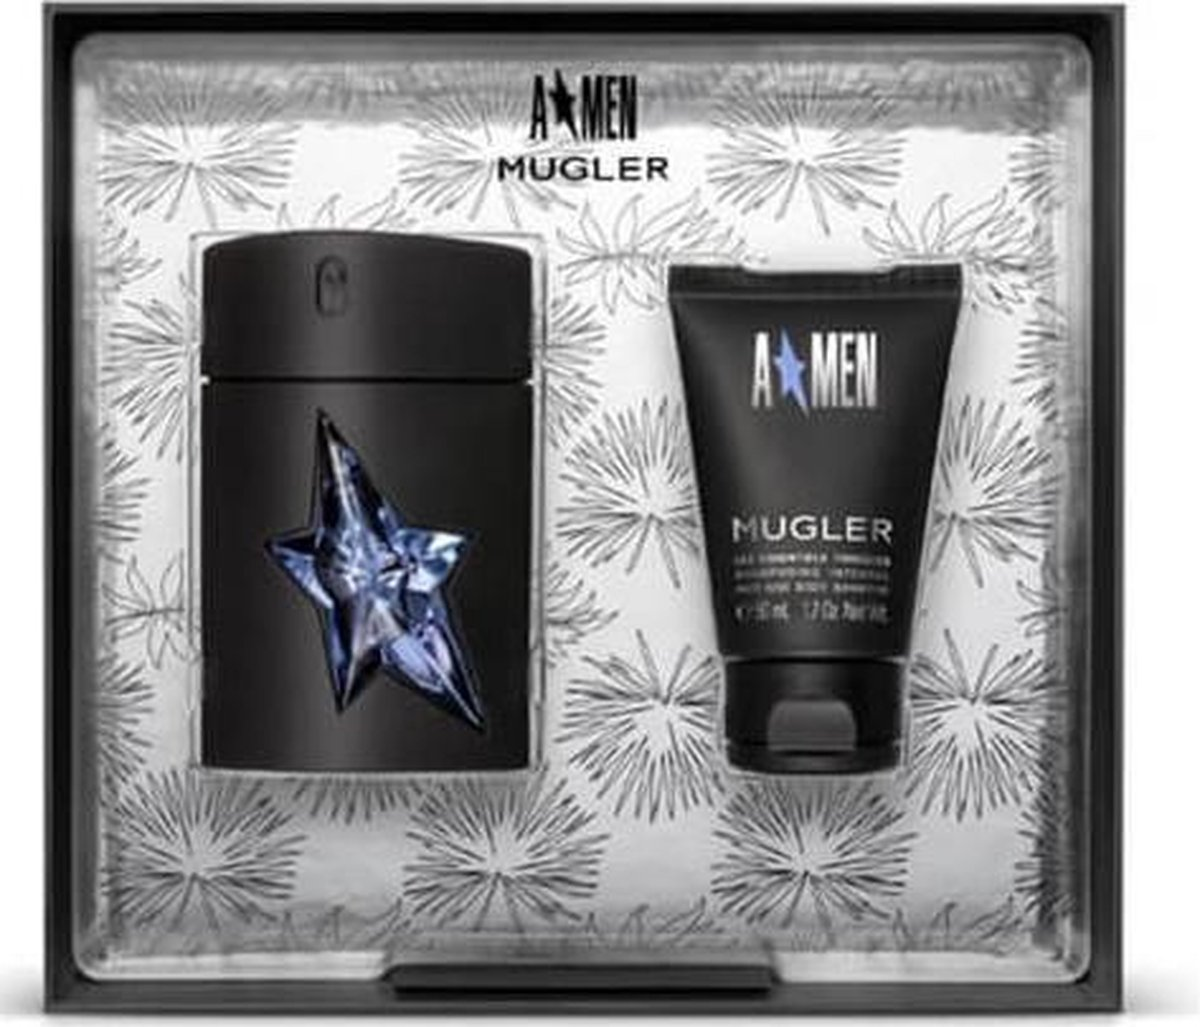 Mugler A Men Eau De Toilette Spray 50ml Set 2 Pieces 2019